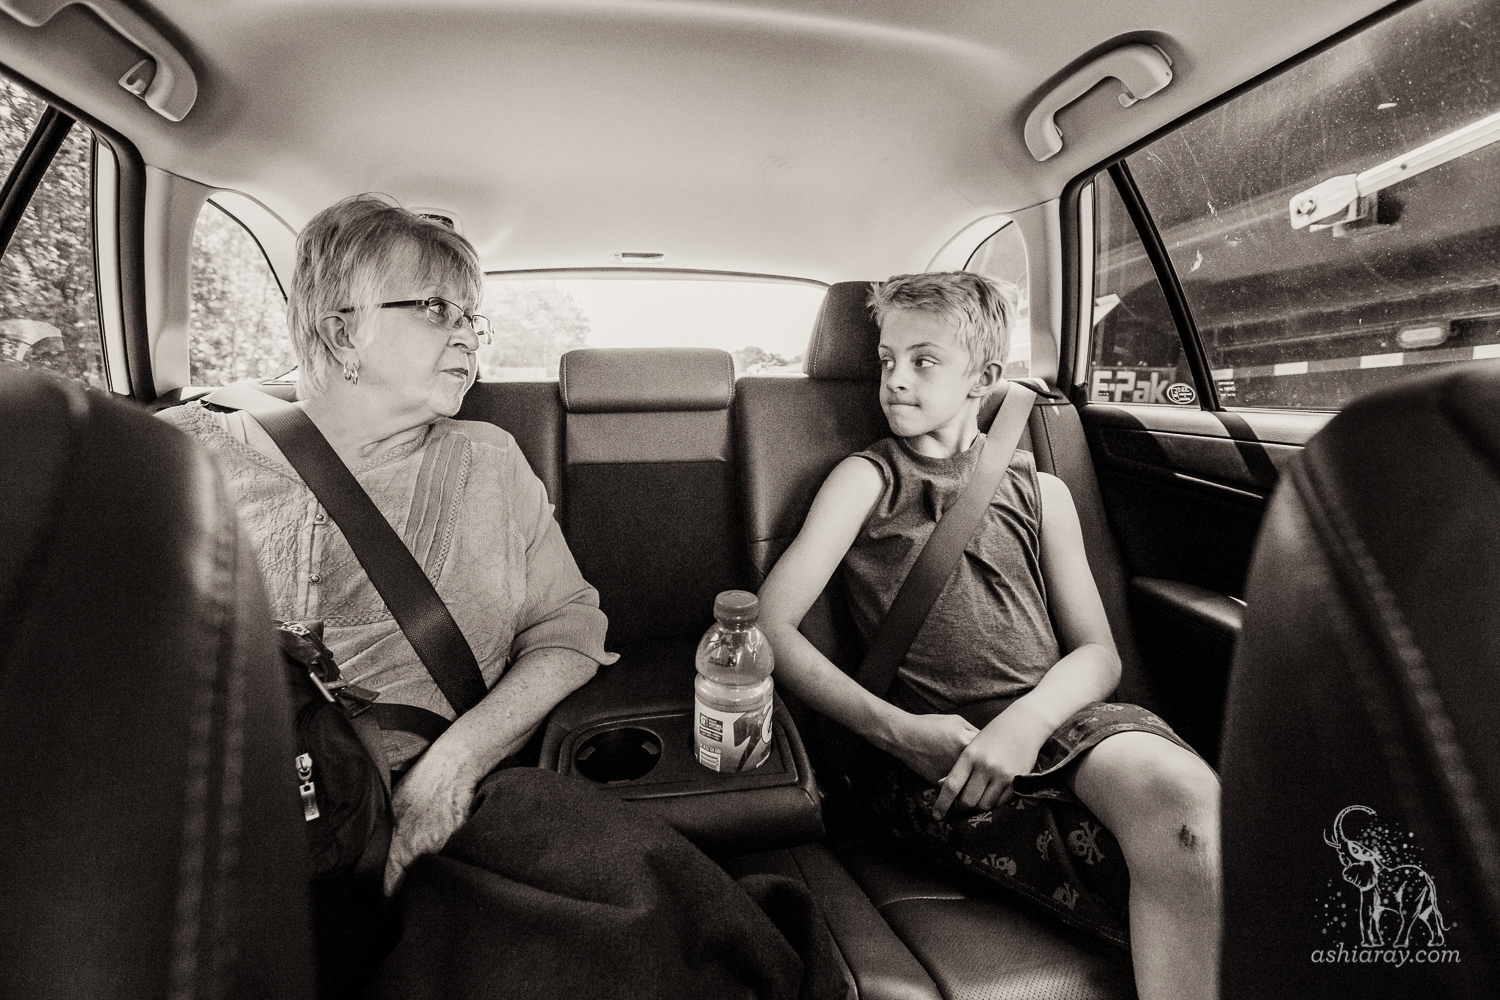 Grandmother and grandson in backseat of vehicle